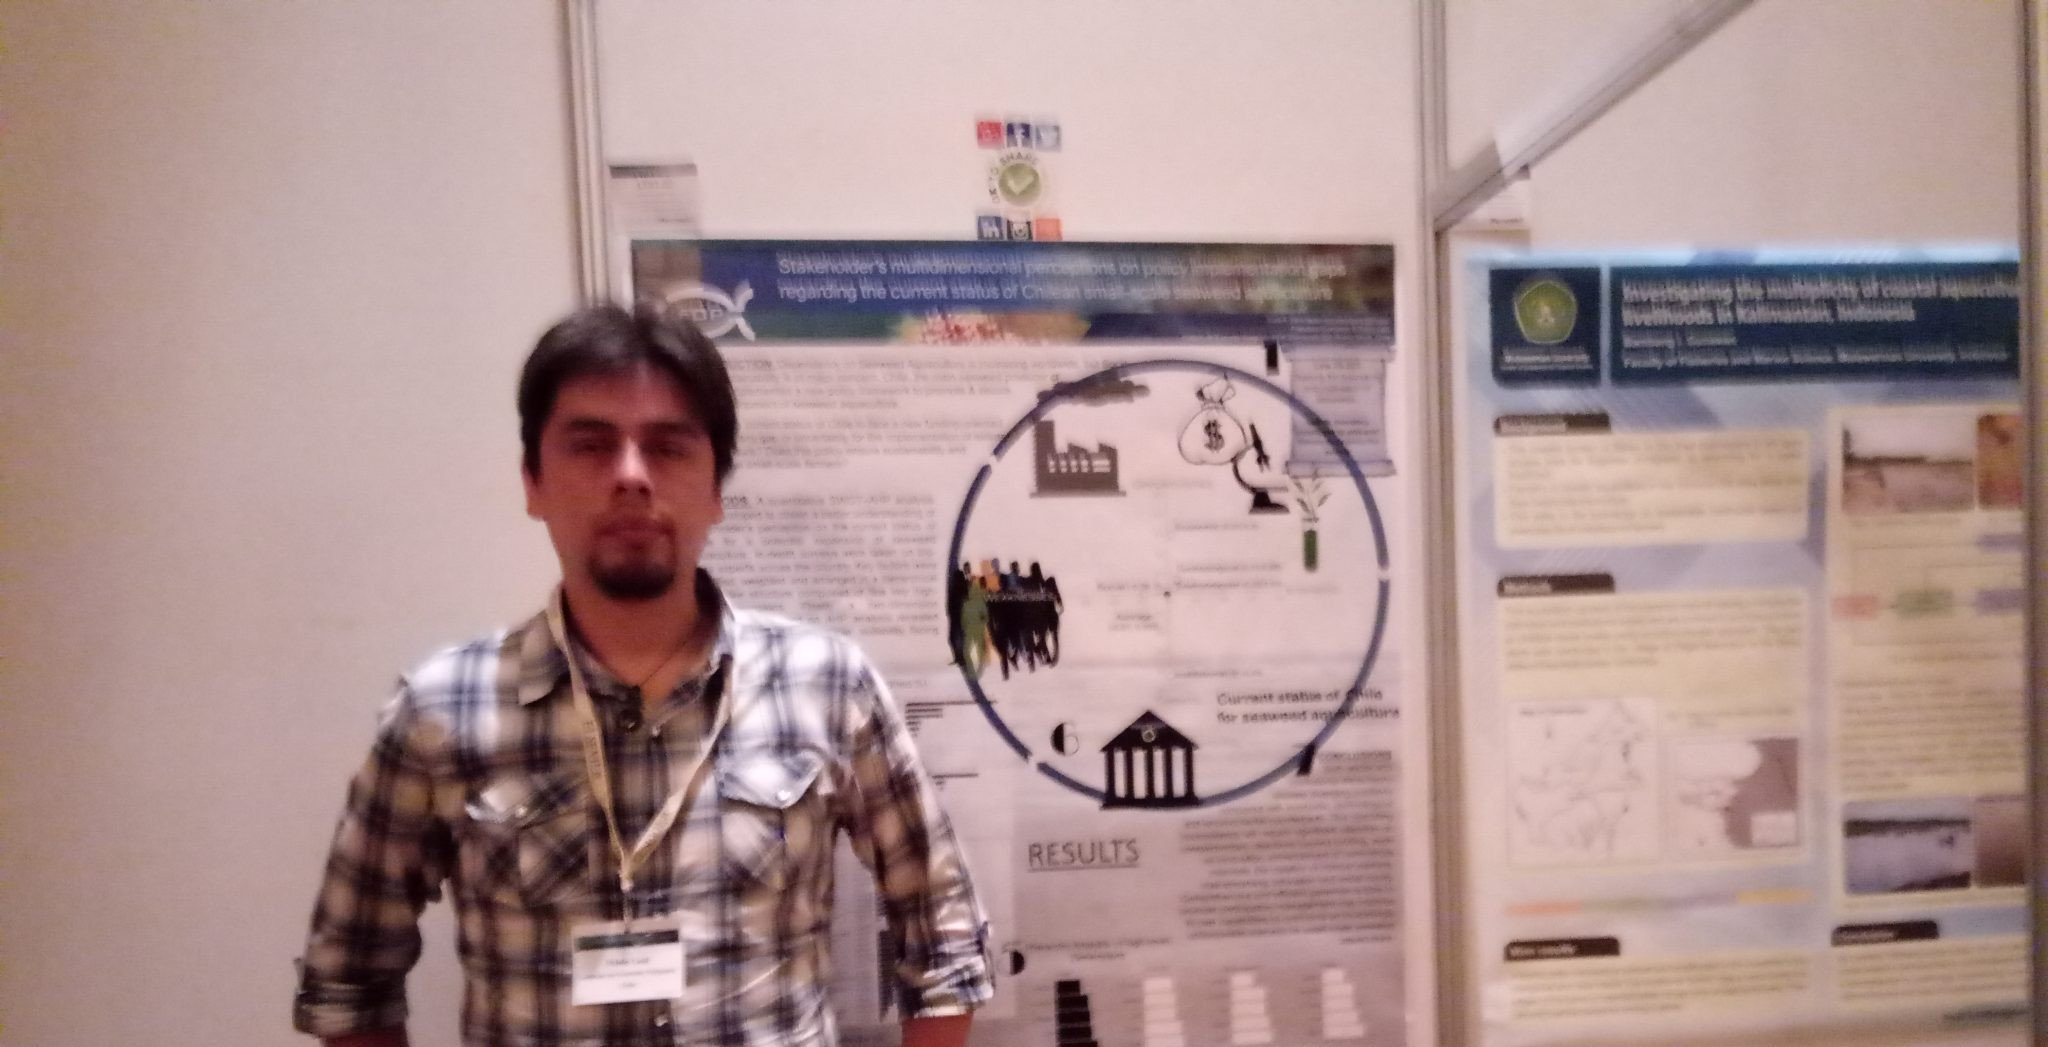 Dr. Pablo Leal from IFOP presented his research at an international aquaculture conference in China